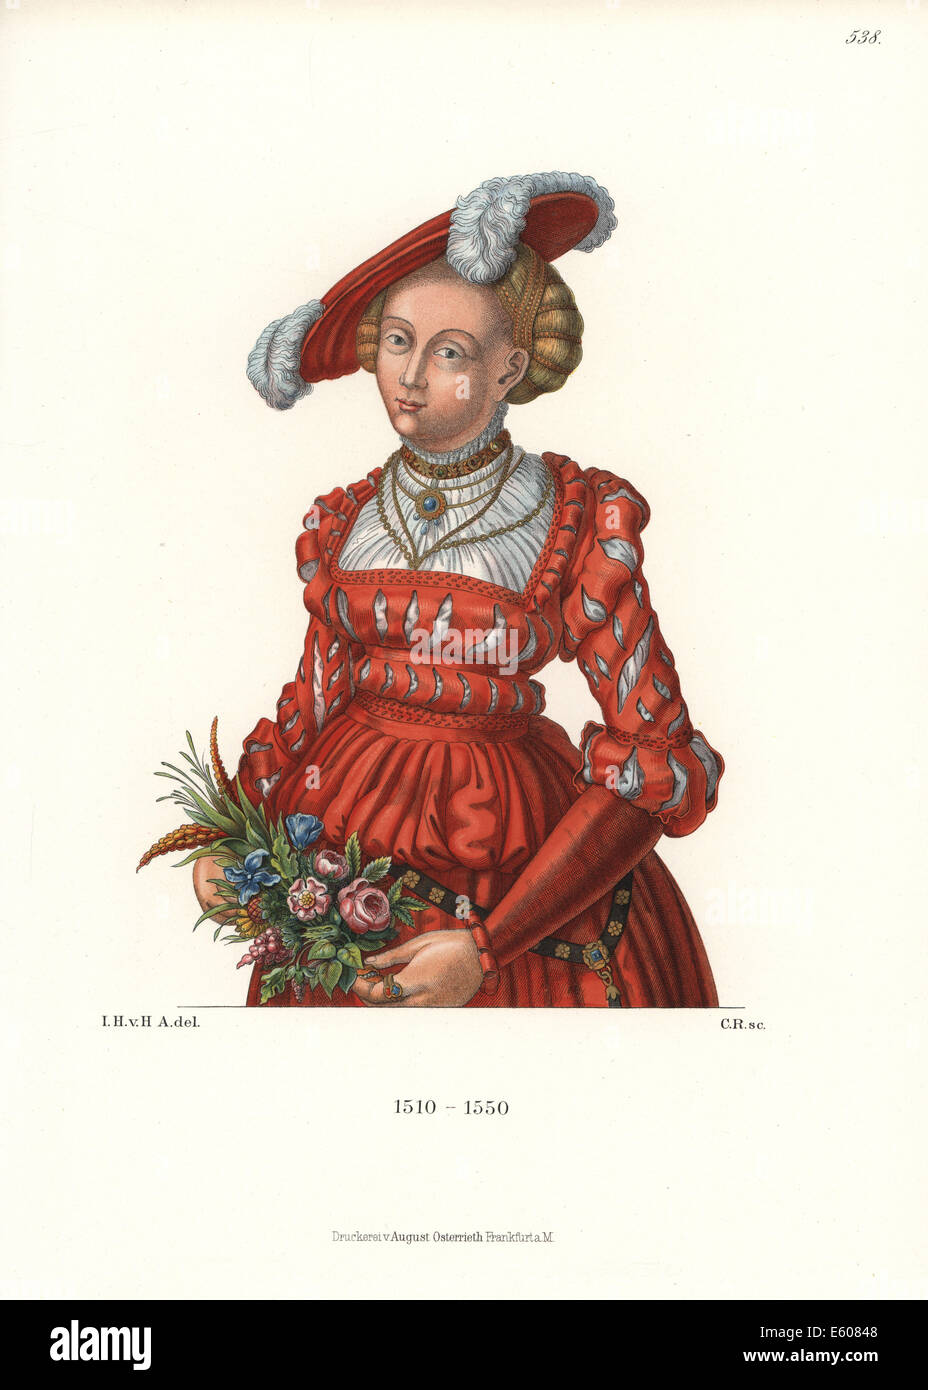 German woman's costume of the first half of the 16th century. - Stock Image